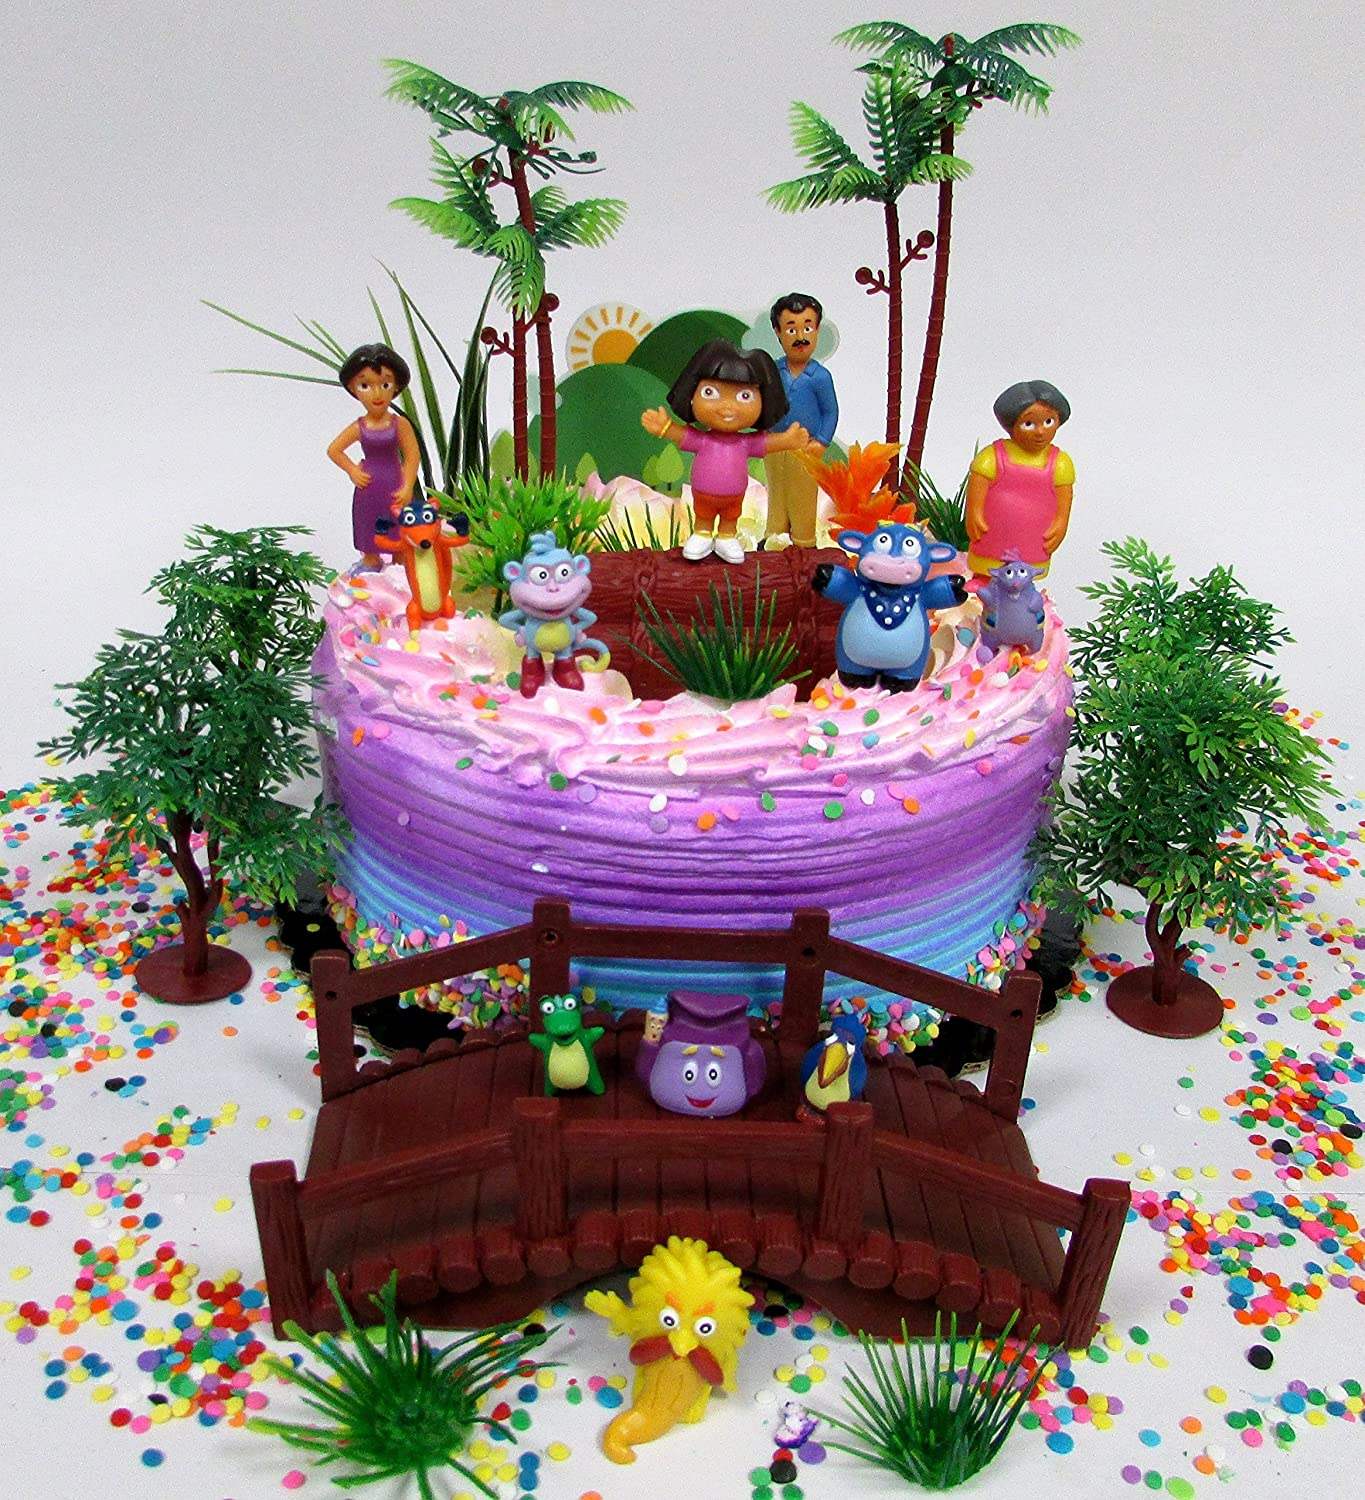 Outstanding Amazon Com Cake Toppers Dora The Explorer And Friends Birthday Funny Birthday Cards Online Alyptdamsfinfo